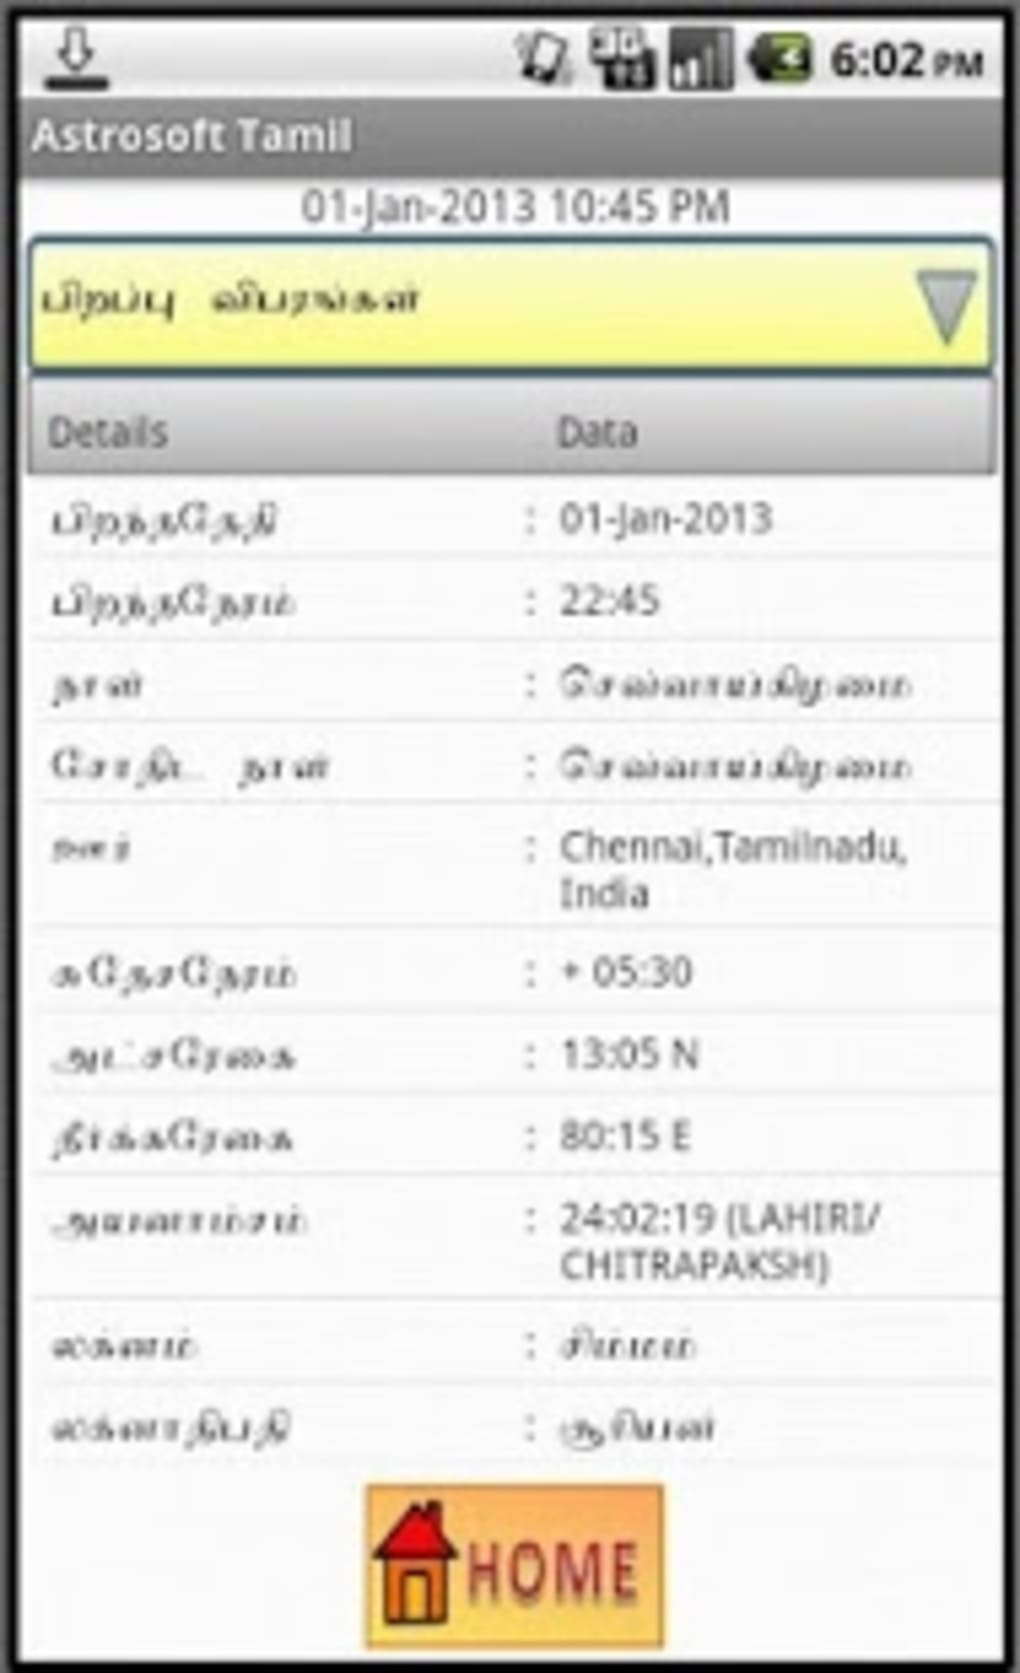 Astrosoft Aio Tamil Astrology For Android Download